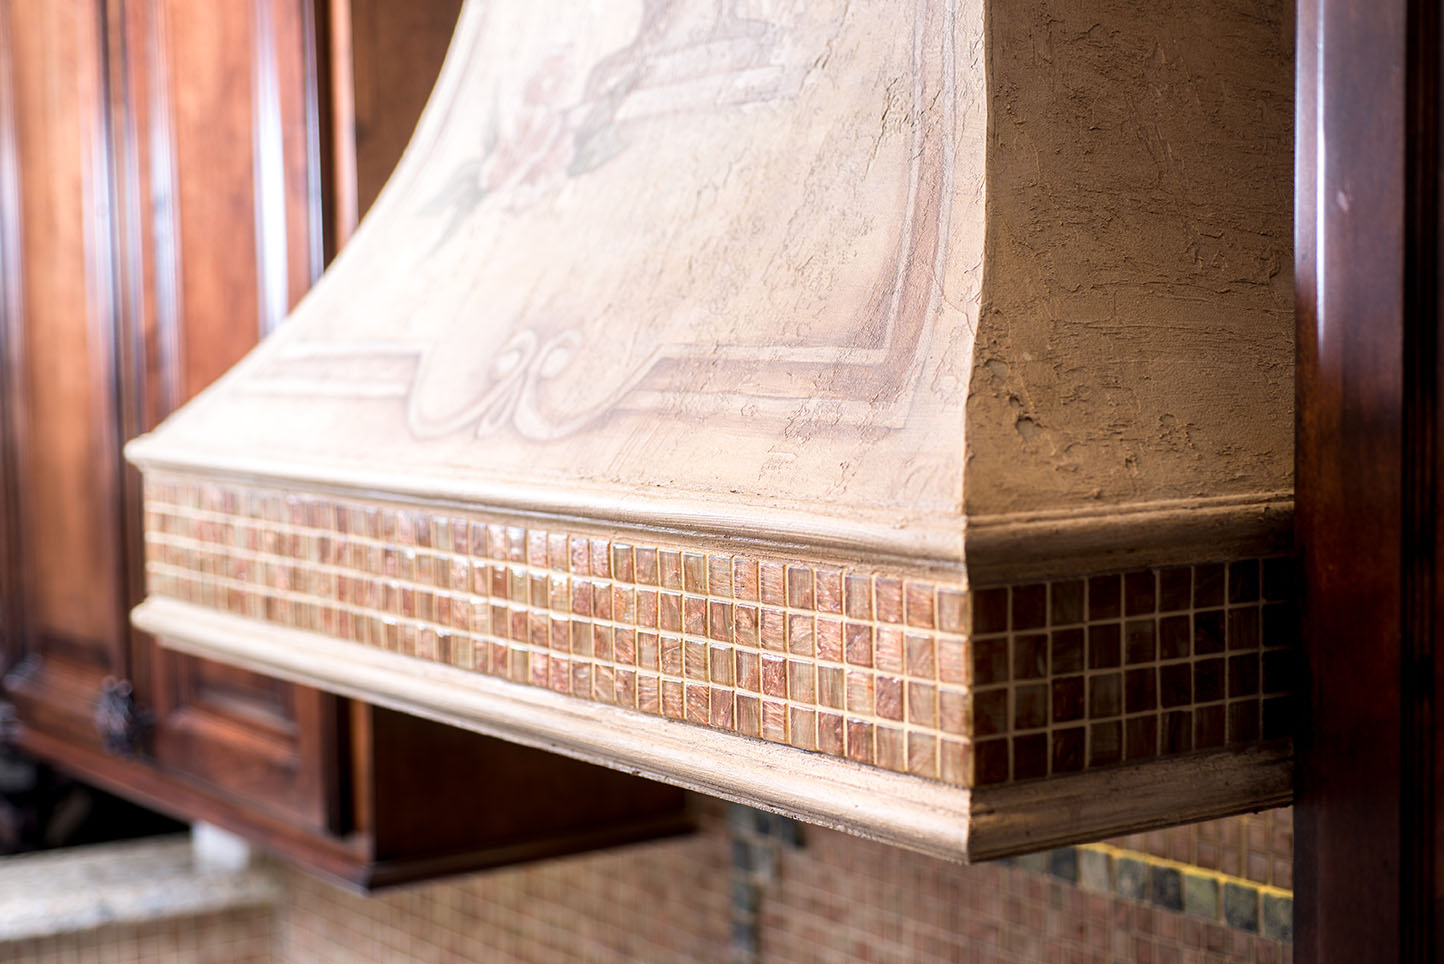 Gorgeous range hood with small square earthy toned tile border